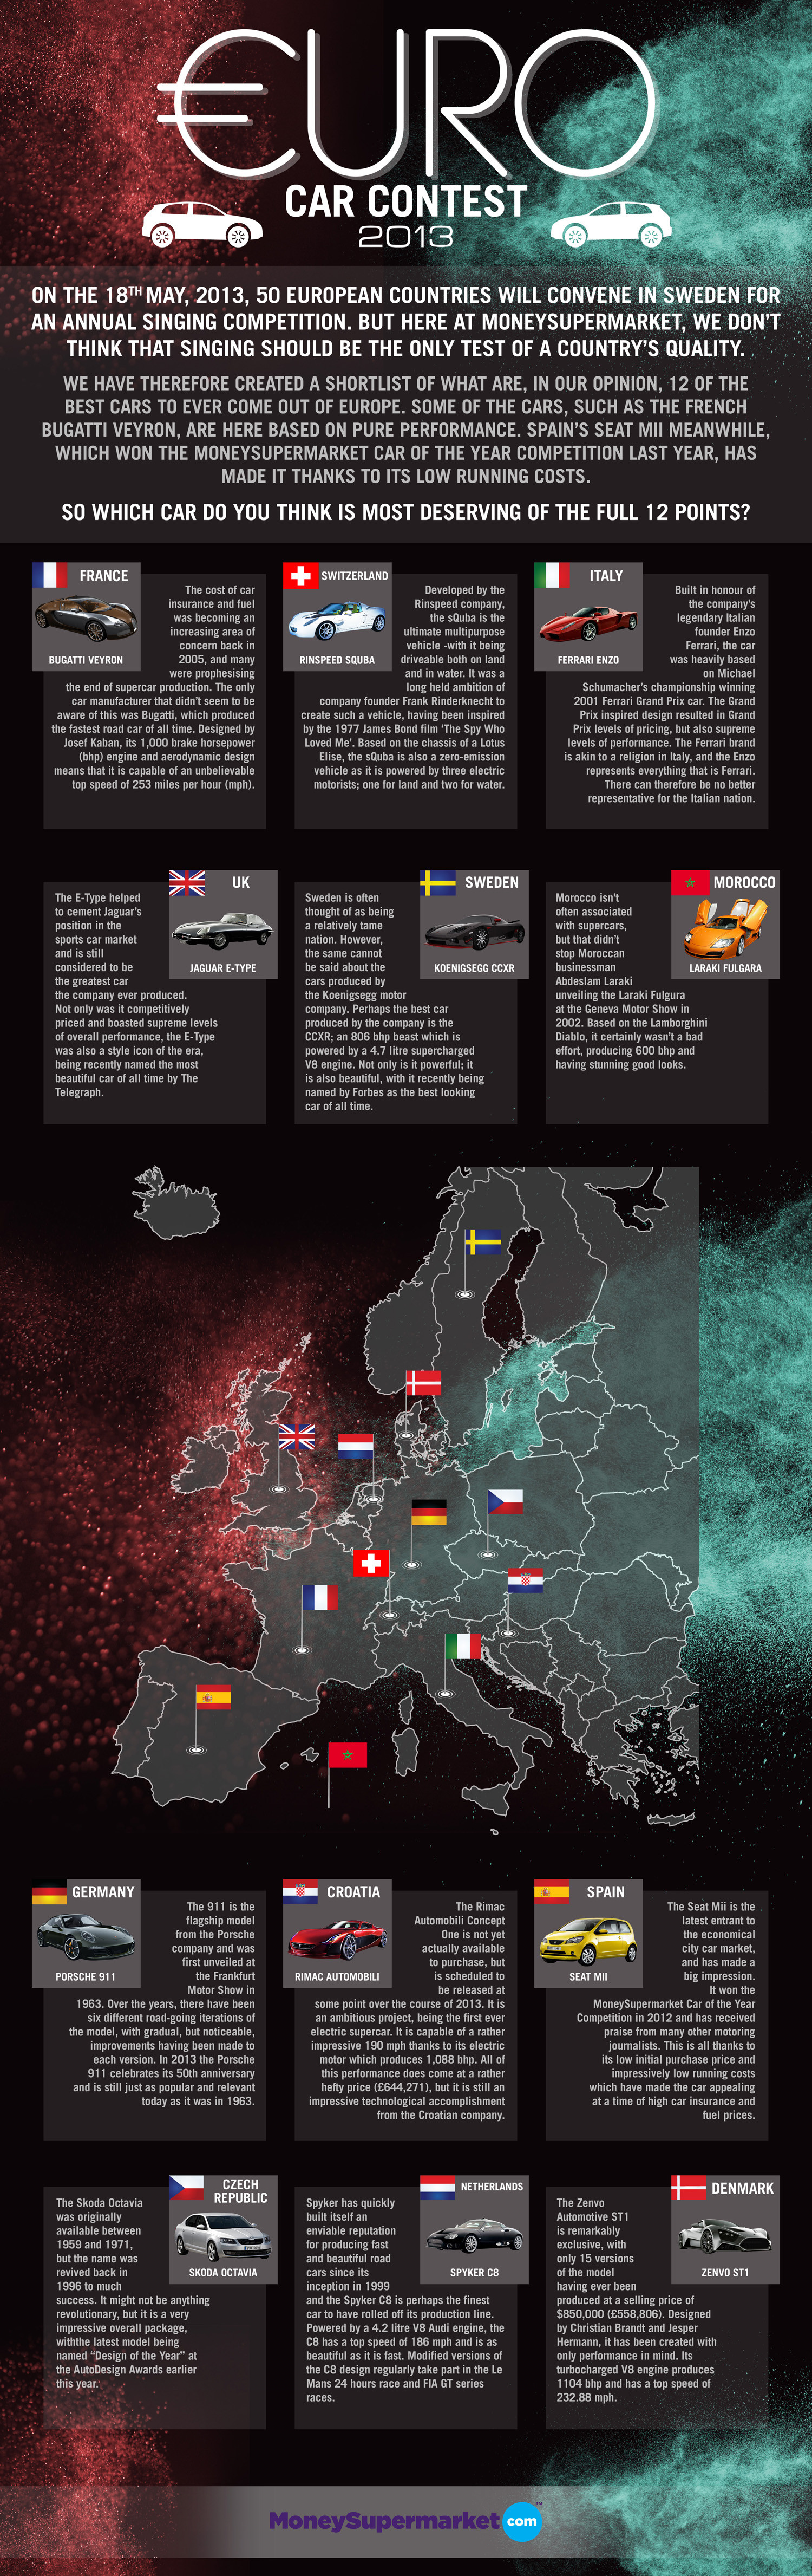 Euro Car Contest 2013 Infographic